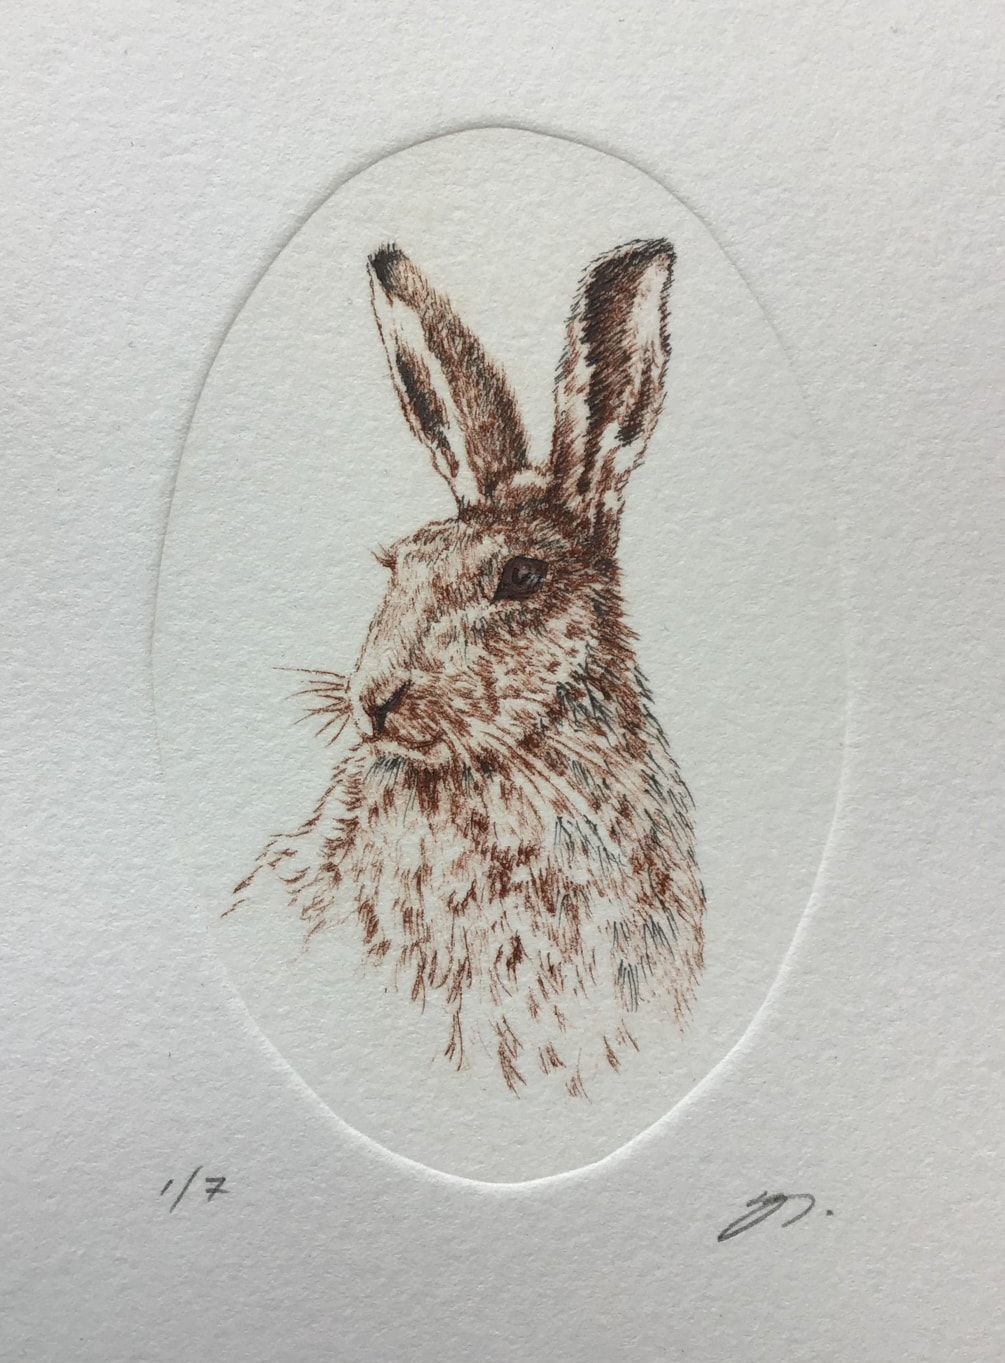 'Hare I am' by Margaret Mallows